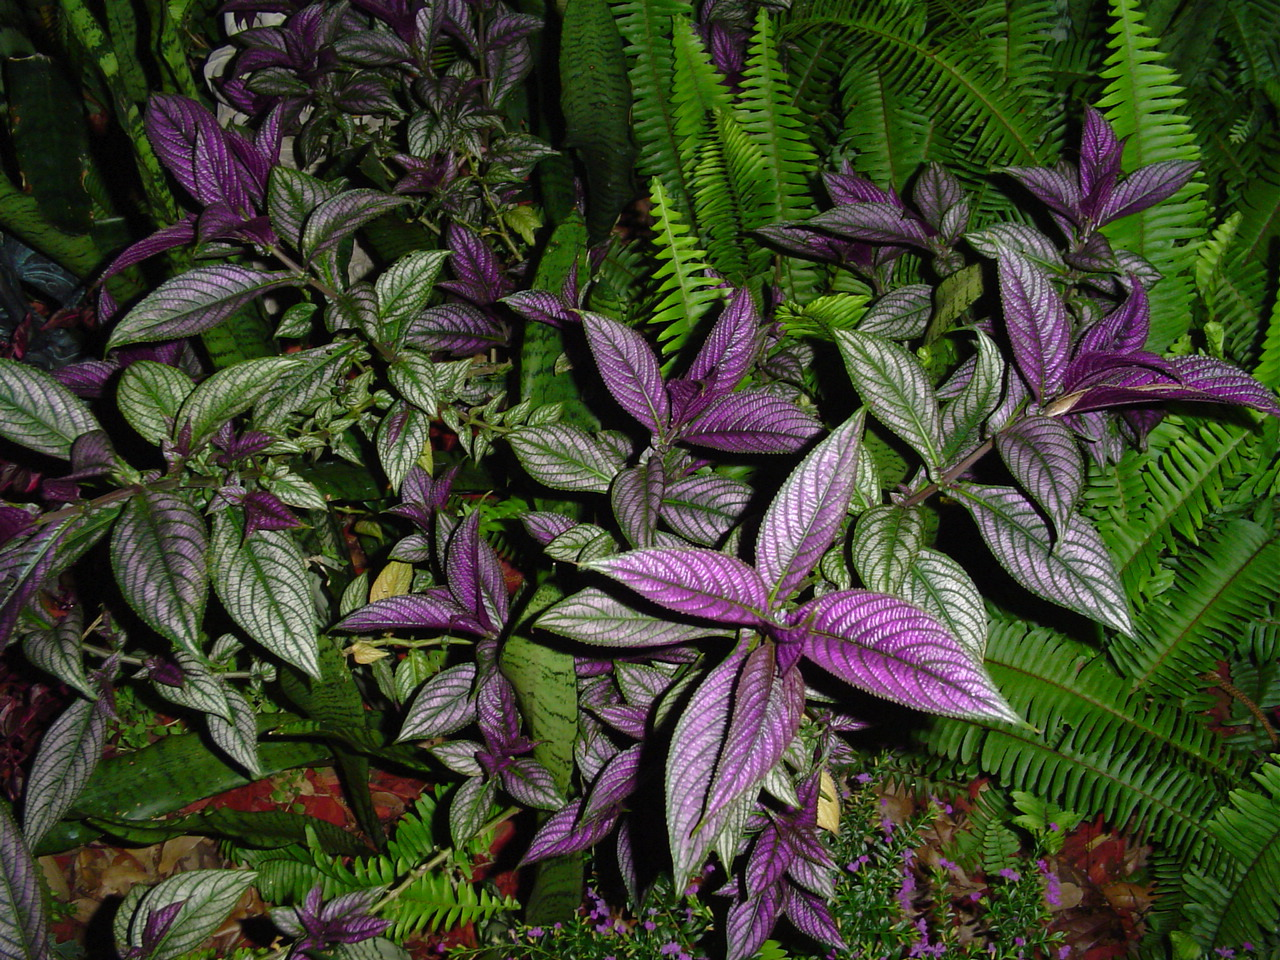 A close up horizontal image of Persian shield plants growing in a shaded location with ferns.